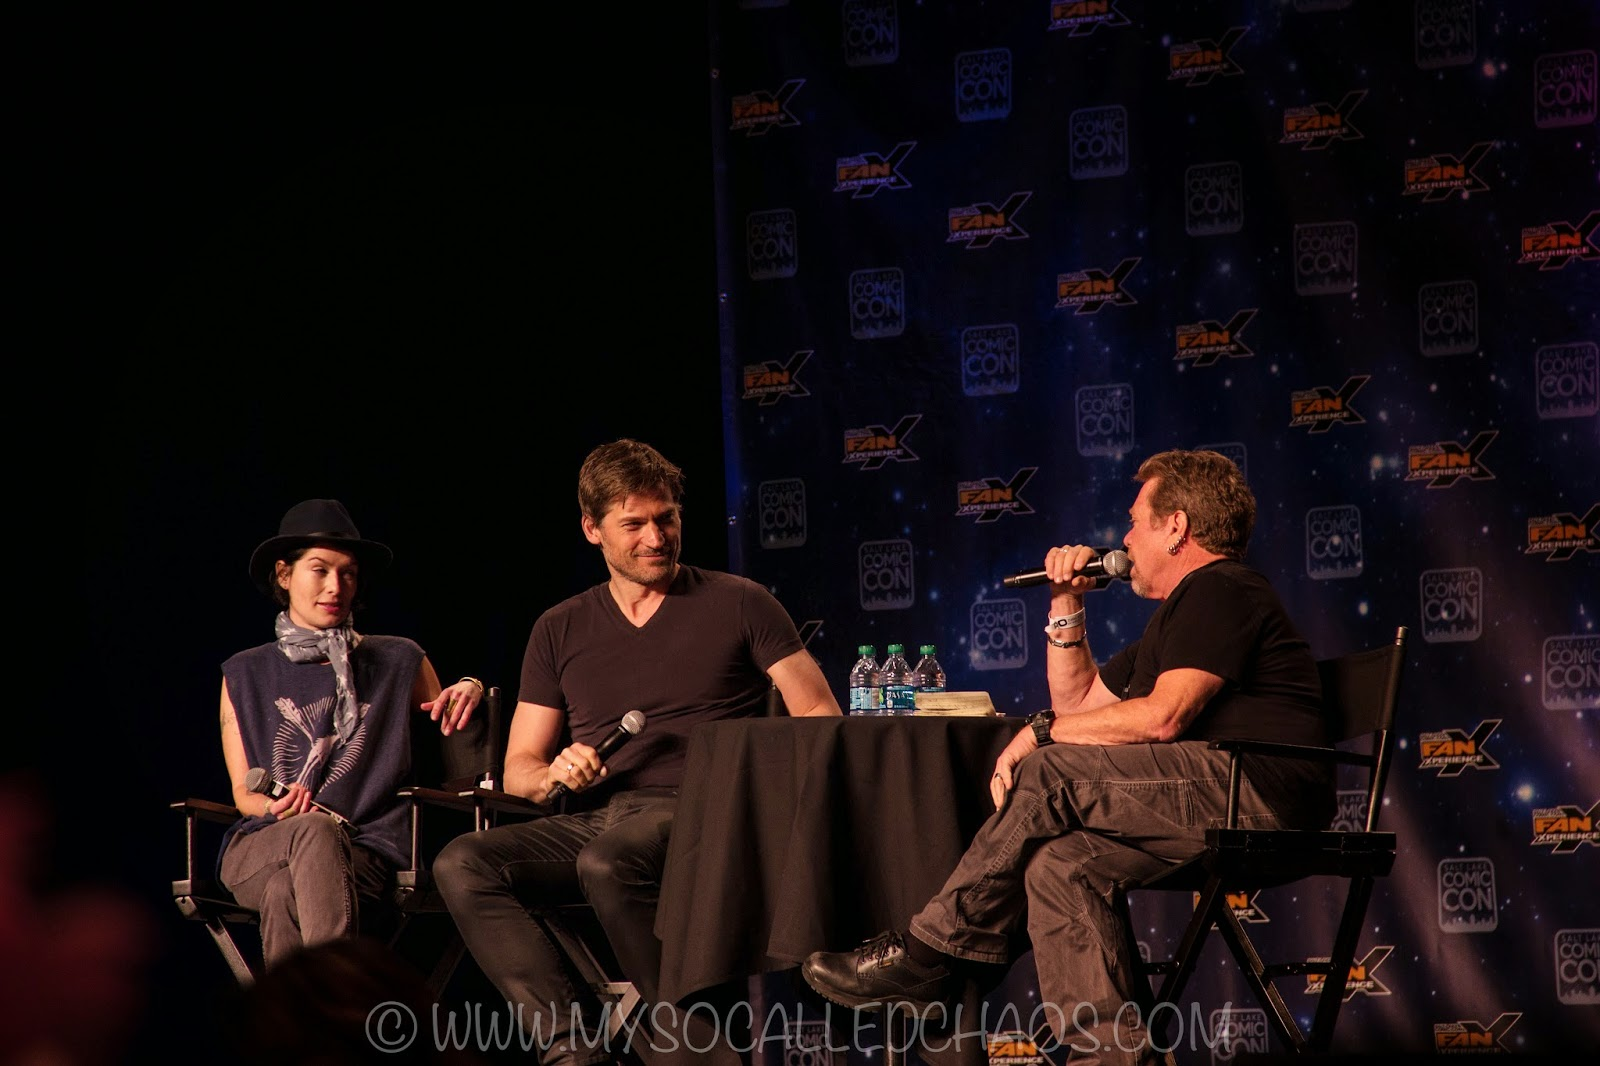 Lena Headey and Nikolaj Coster-Waldau at Salt Lake Comic Con FanX15 #FanX15